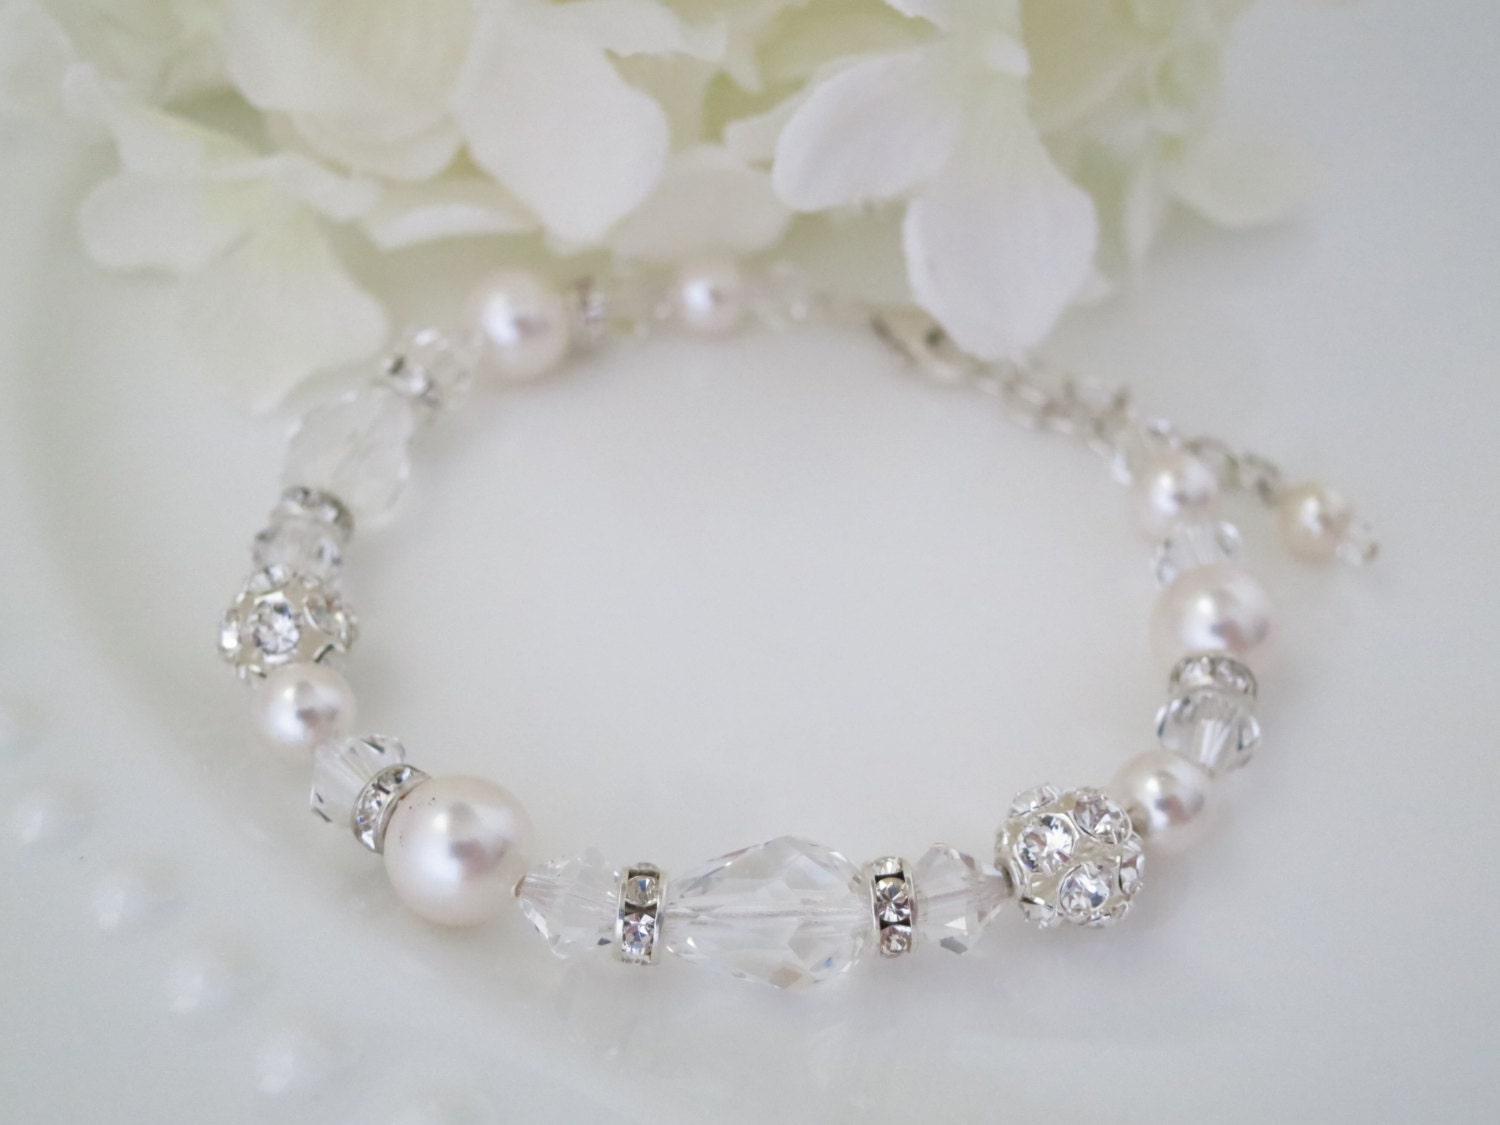 Crystal teardrop bridal bracelet, Swarovski crystal and pearl wedding bracelet, Simple classic style bracelet